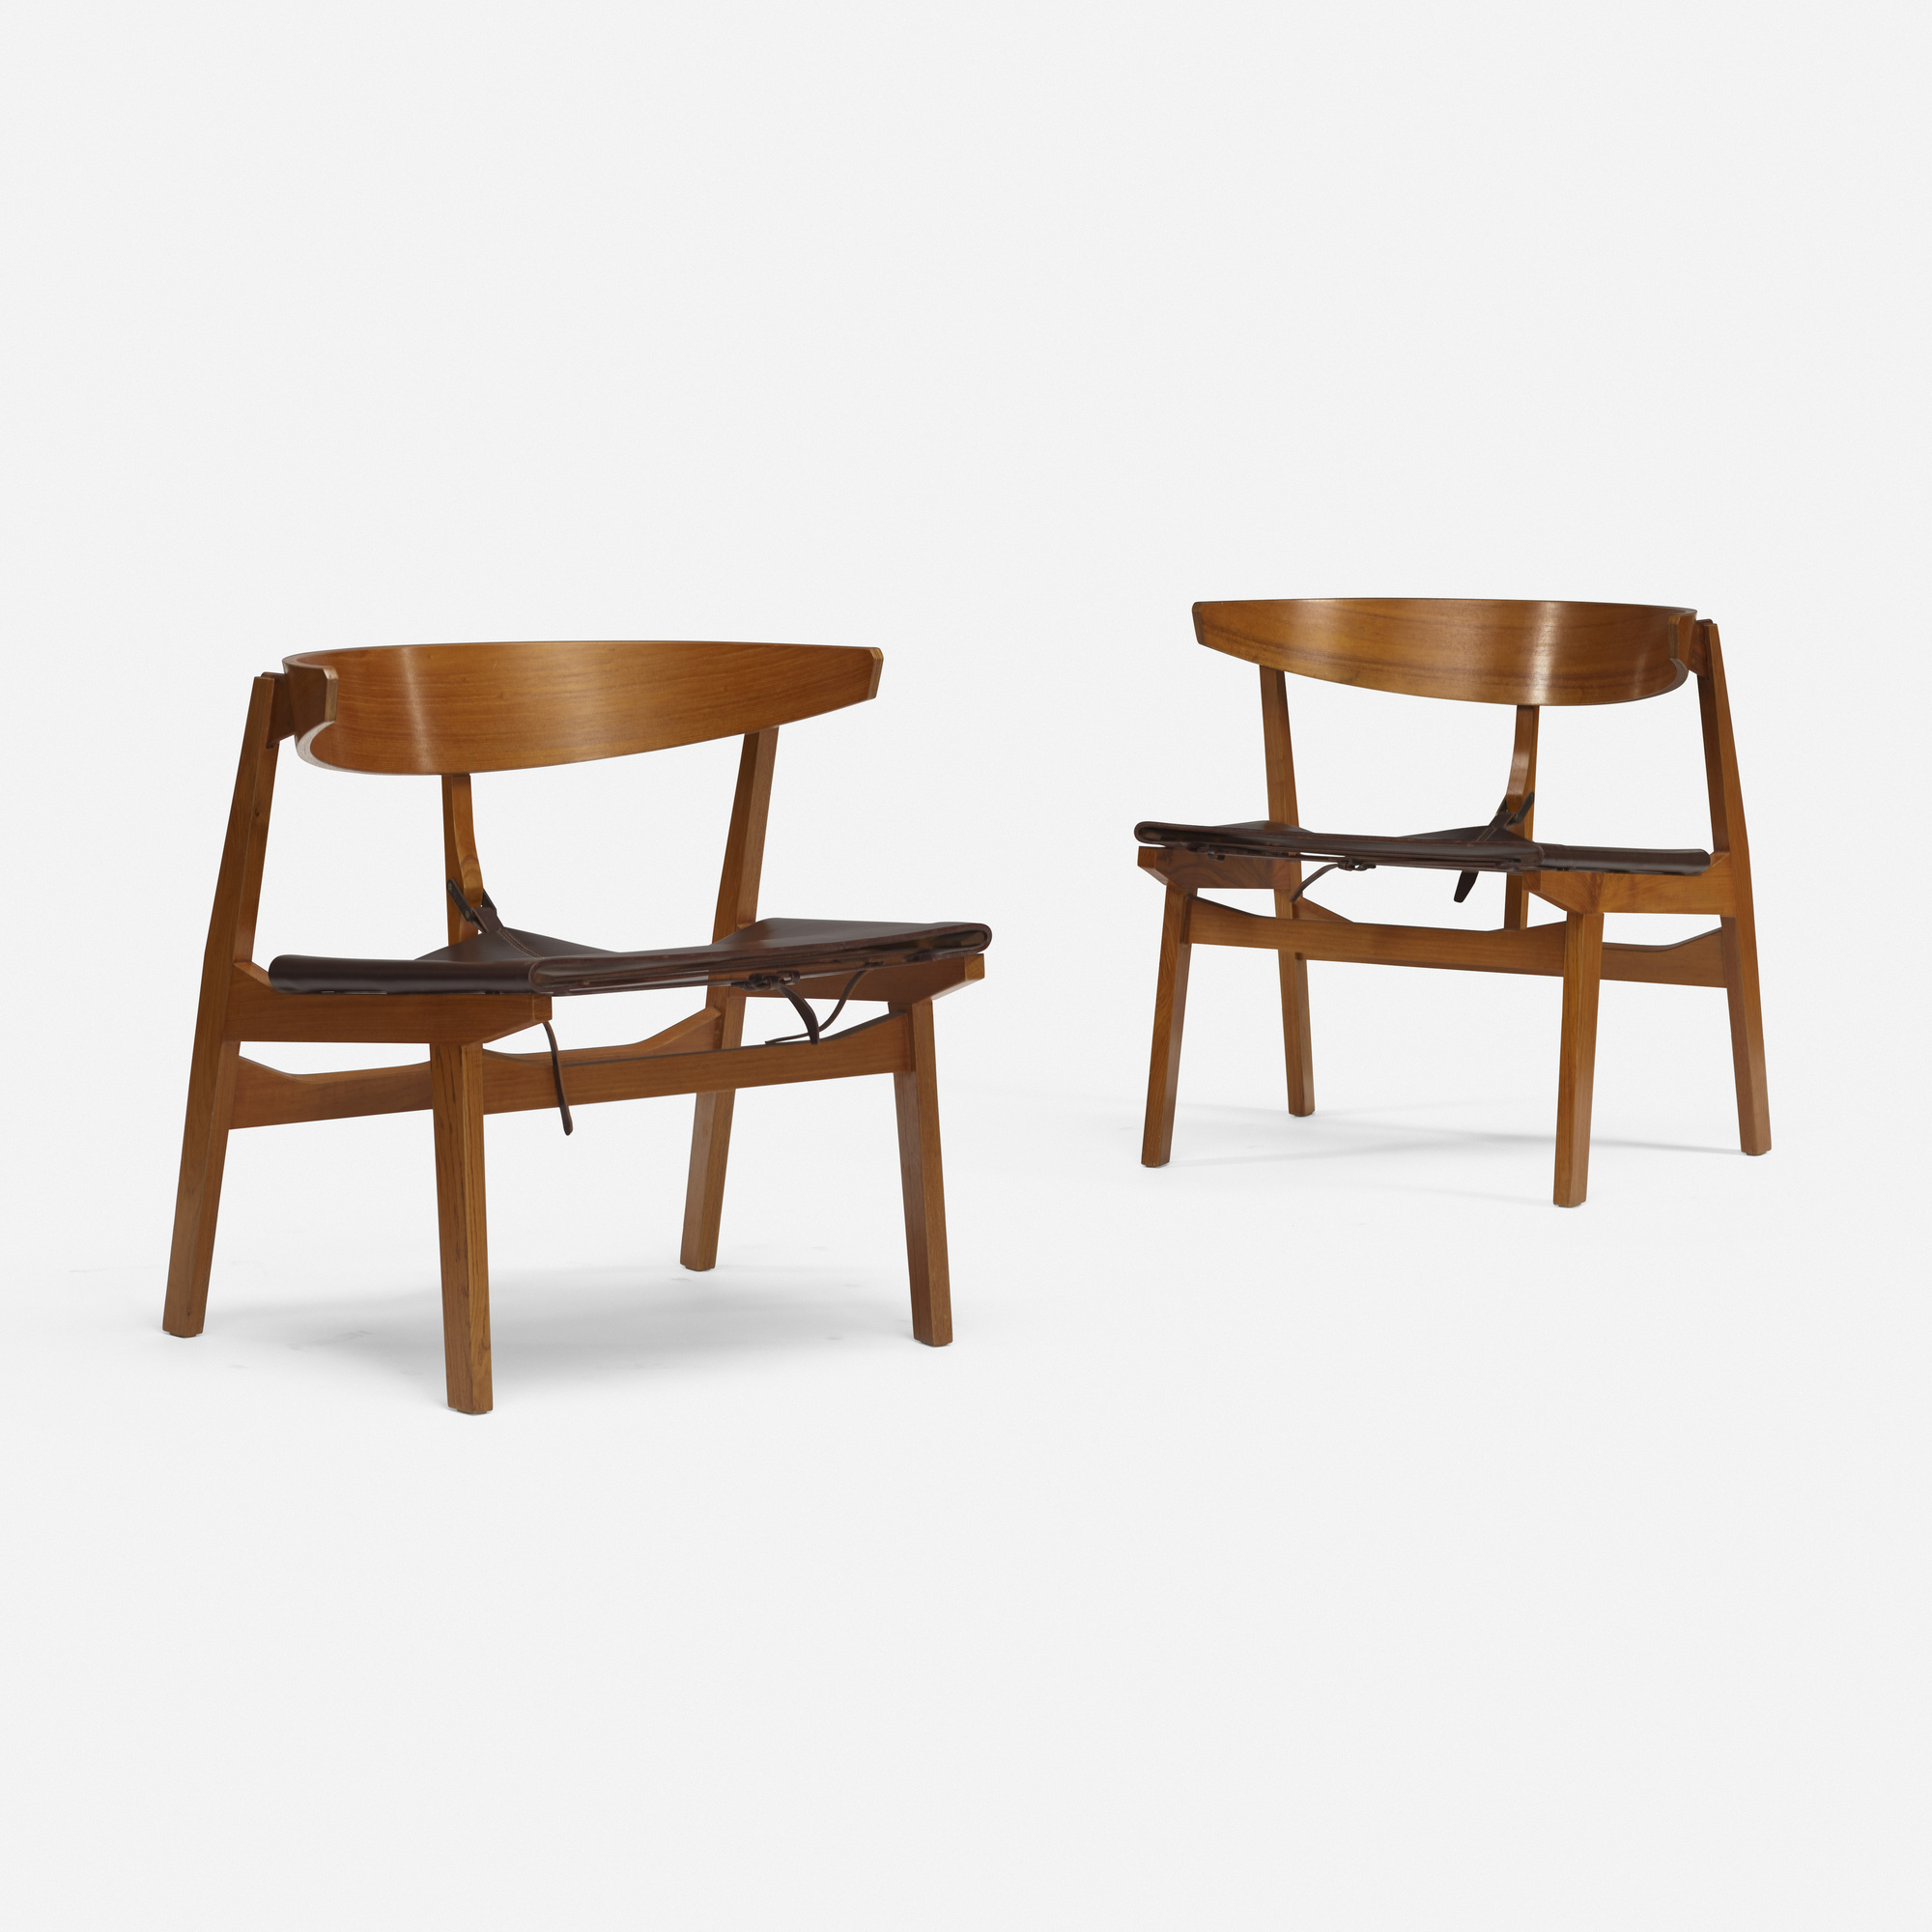 109: Italian / Lounge Chairs, Pair (1 Of 3)